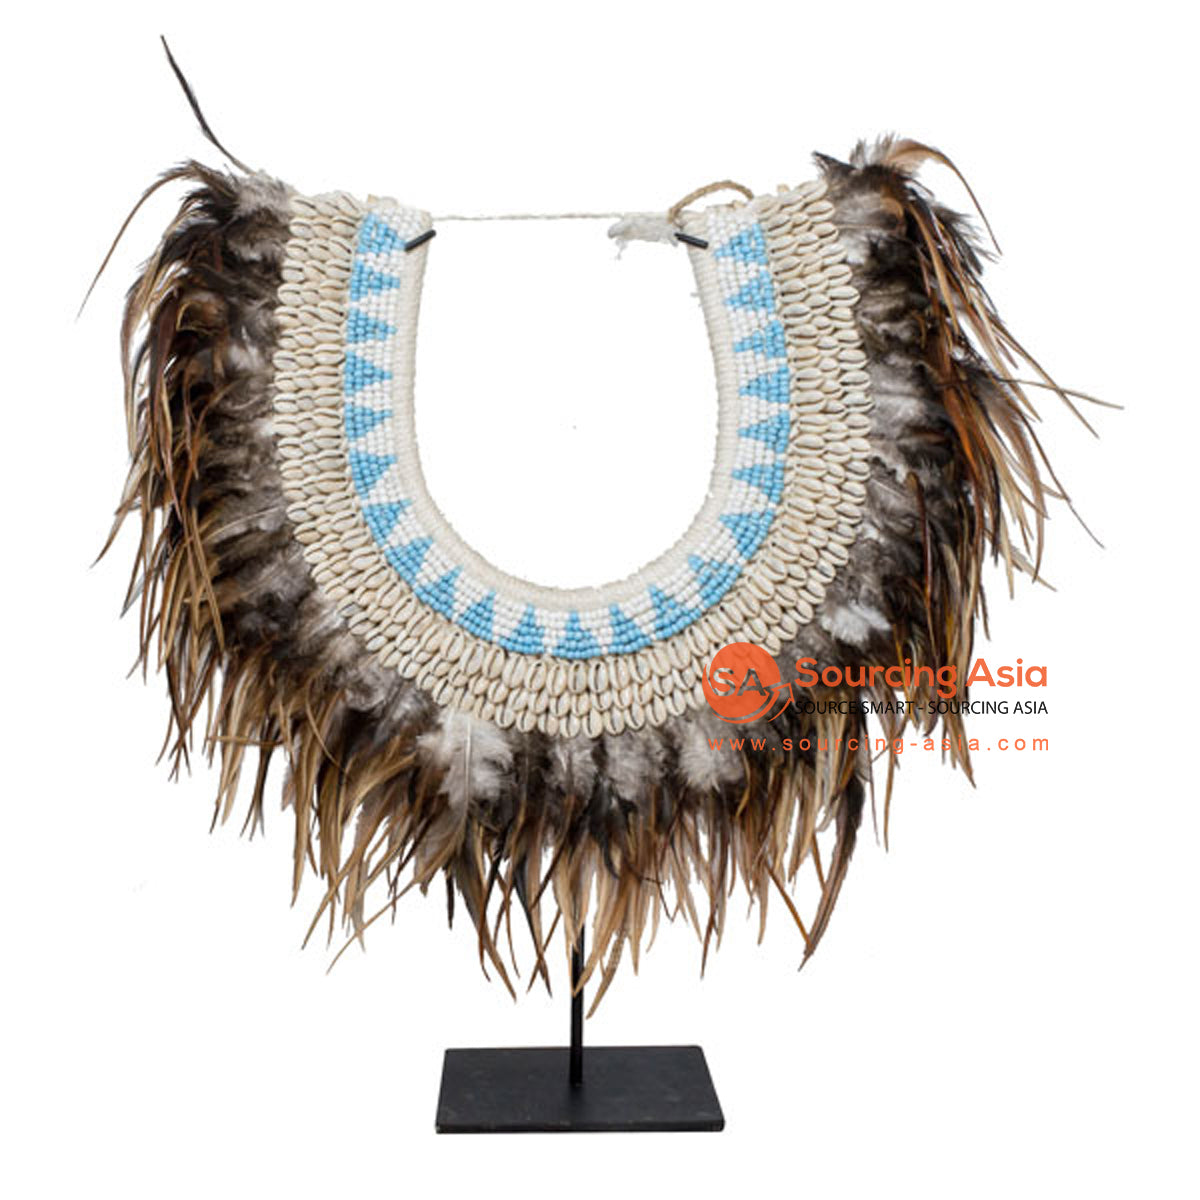 SHL169-9 FEATHERS AND SHELL NECKLACE DECORATION WITH BLACK STAND